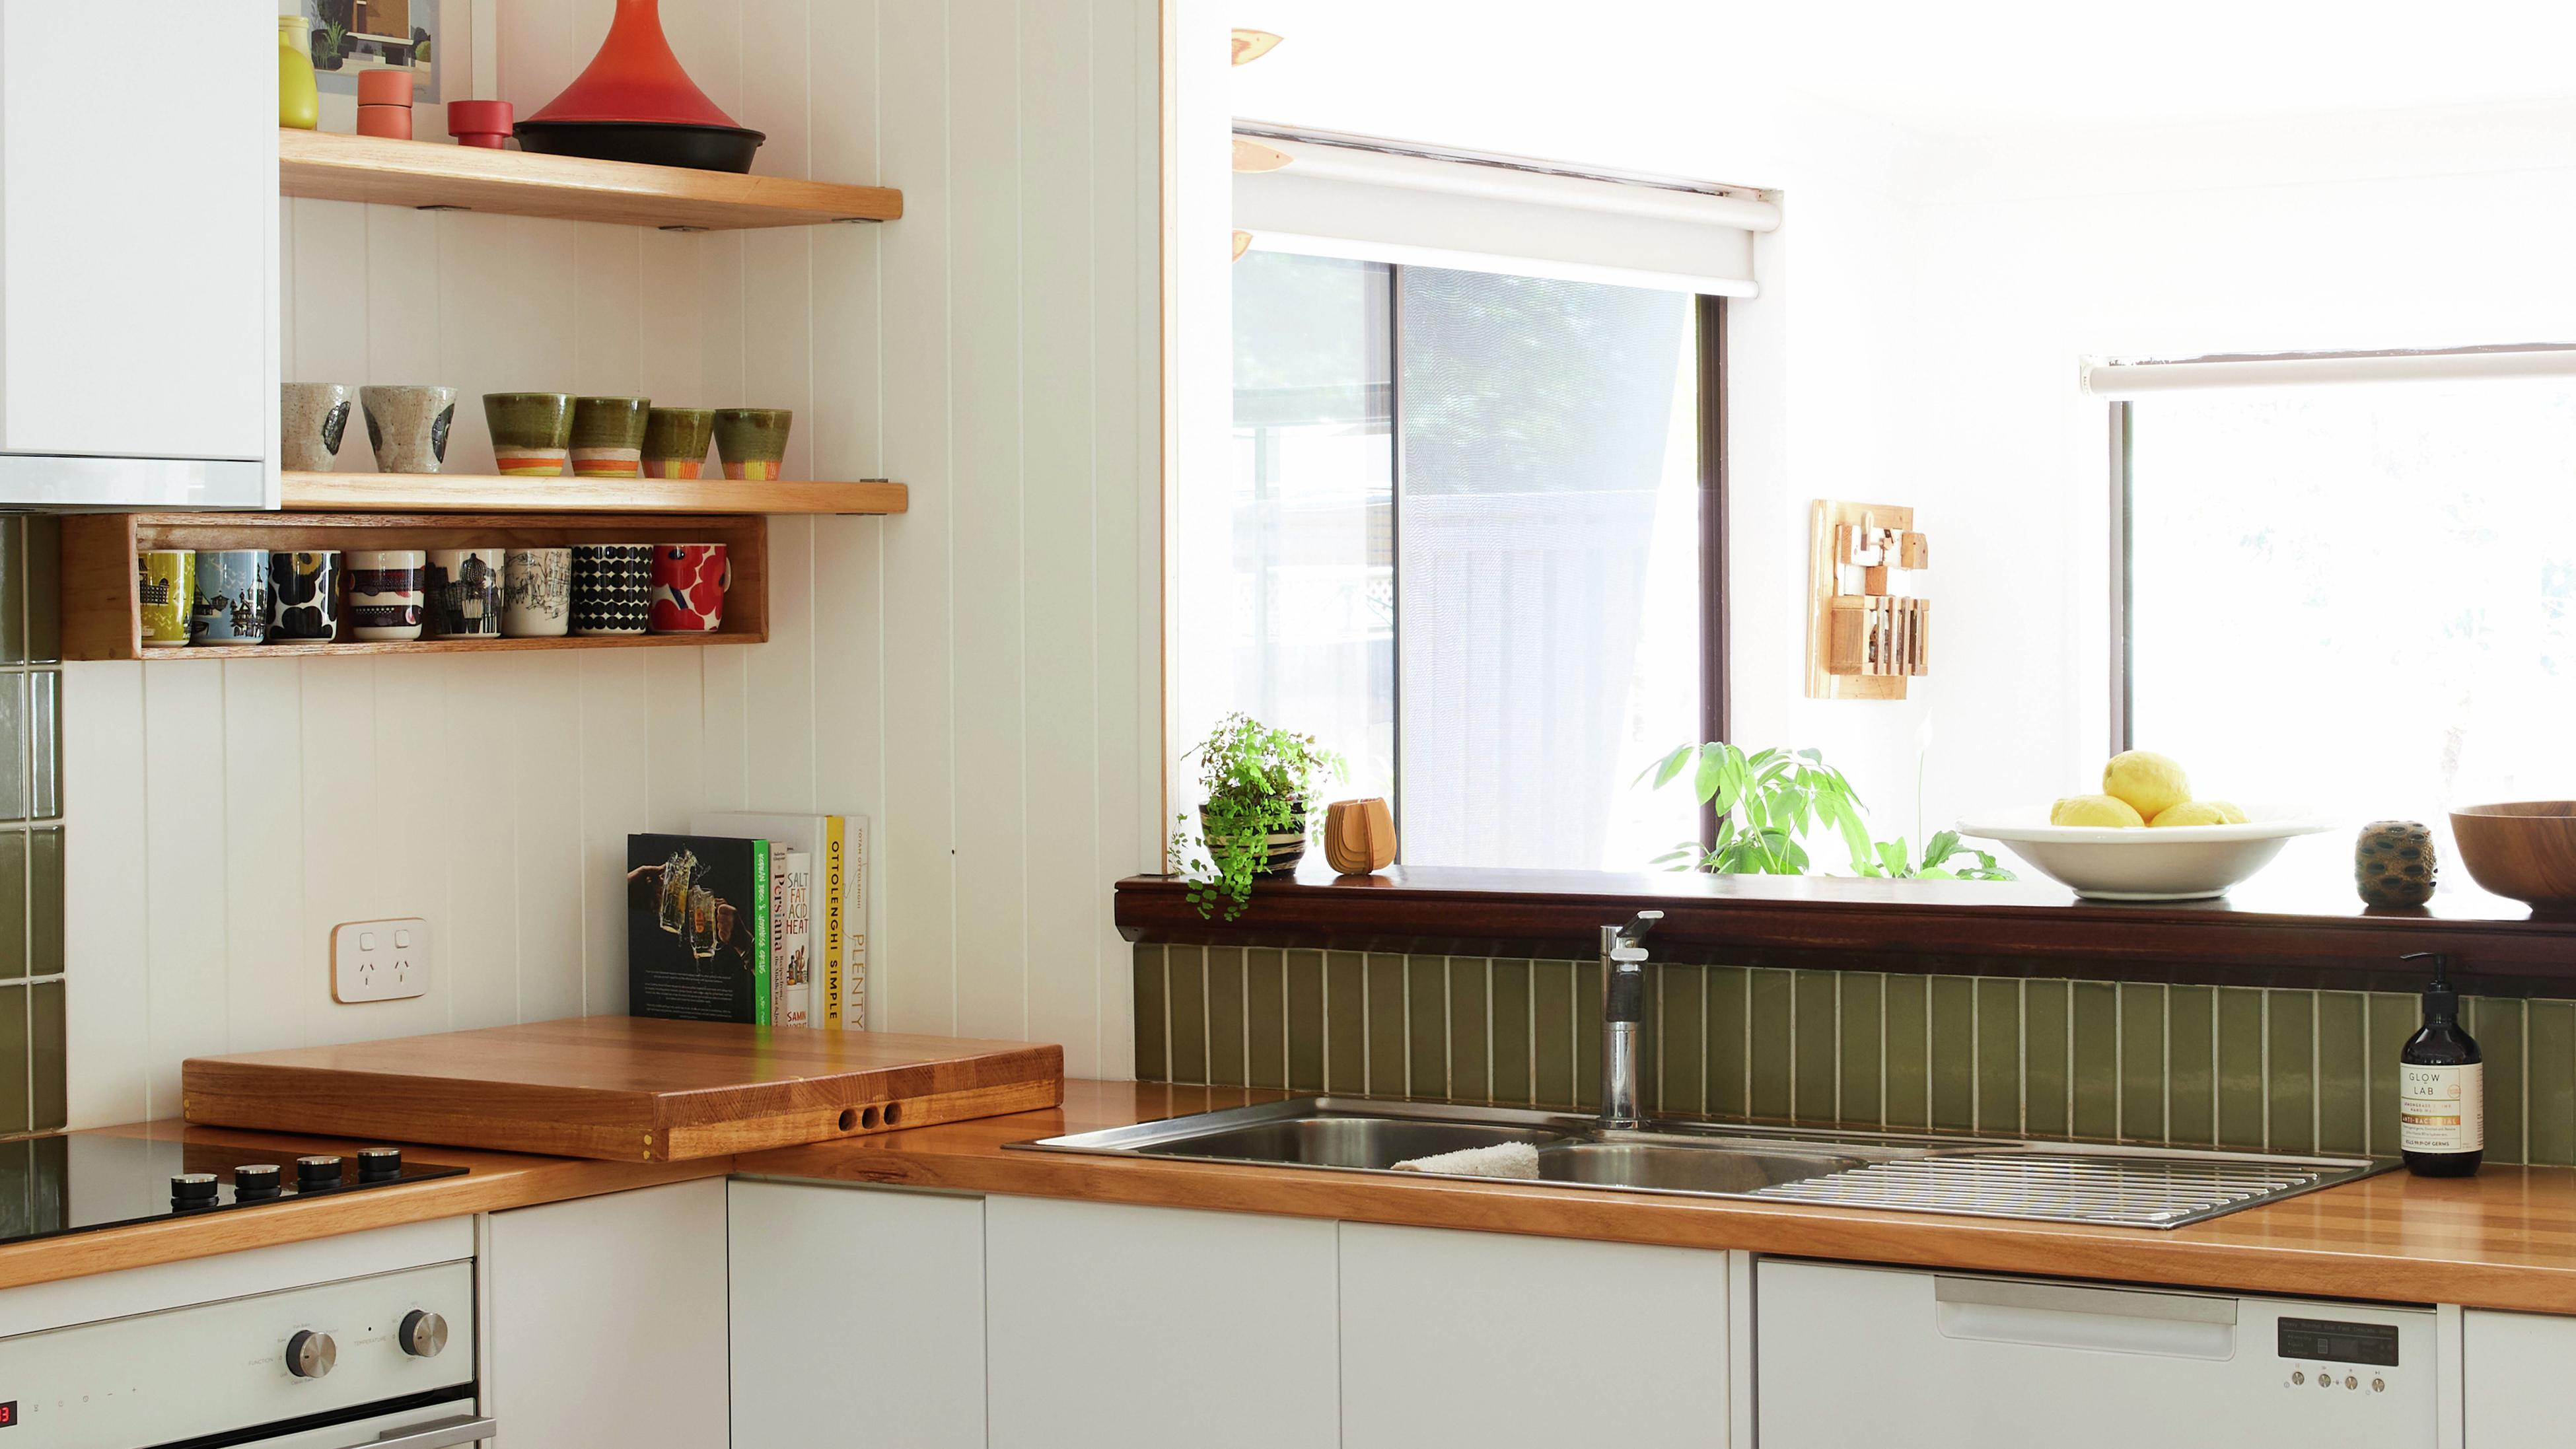 Modern and warm kitchen with timber benchtops and green tiles